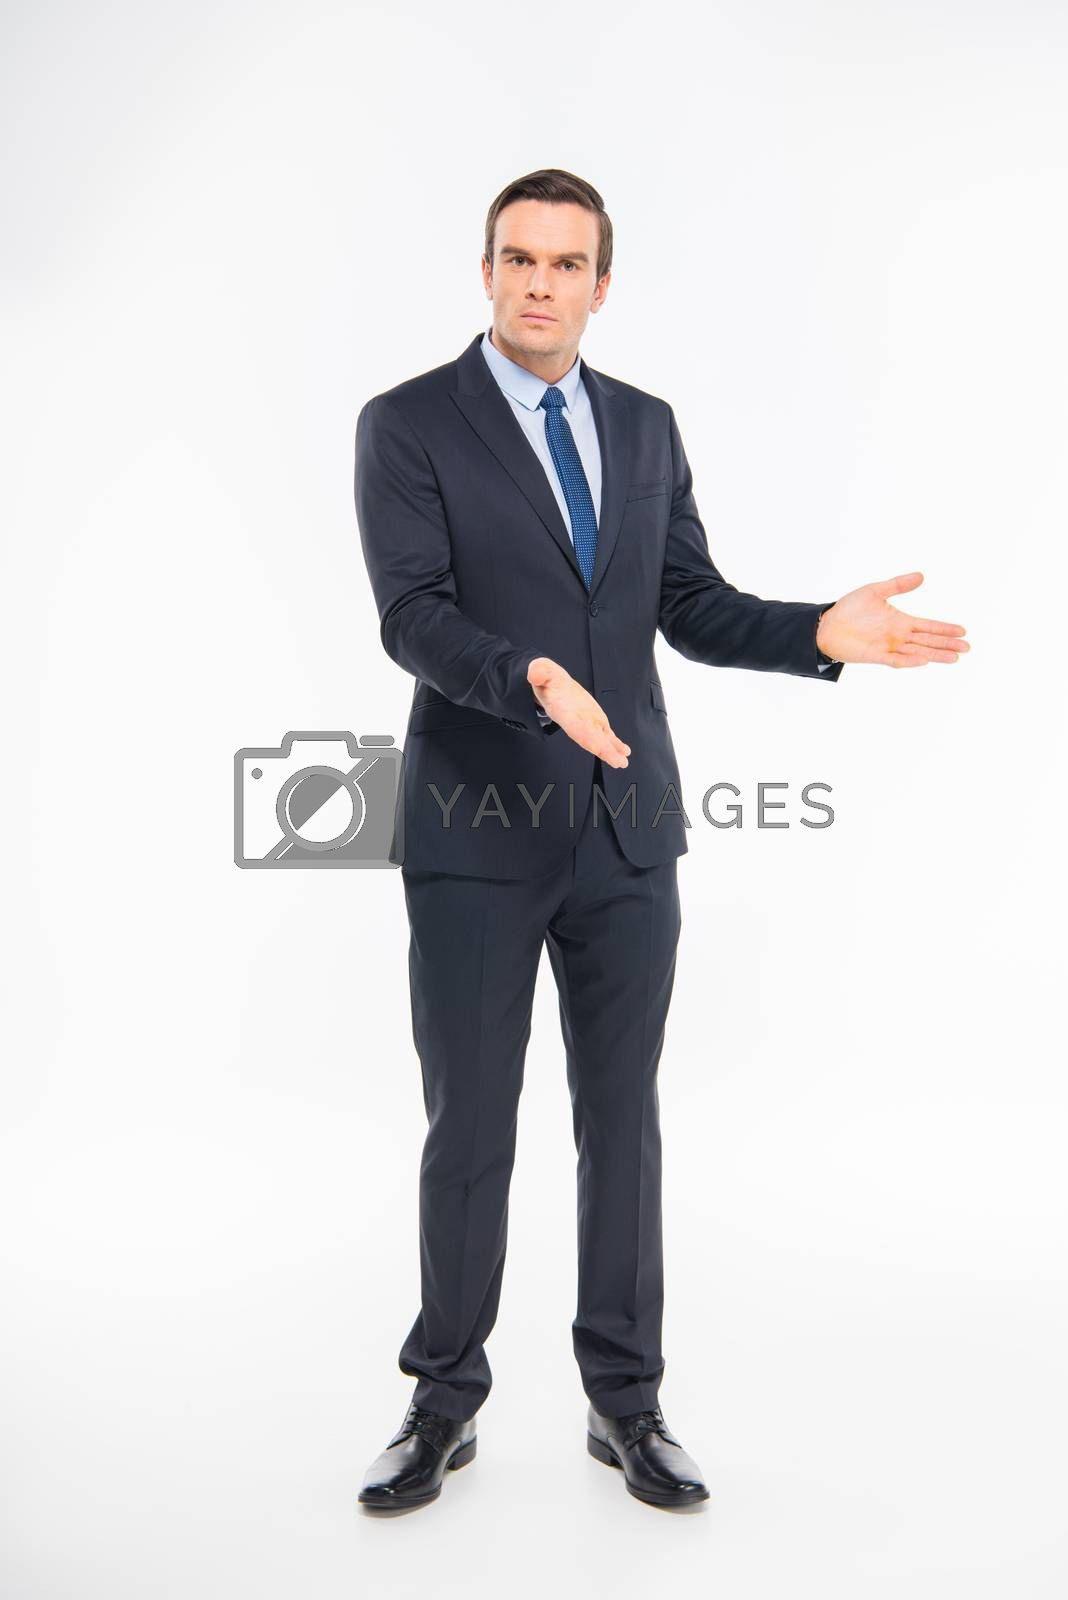 Professional businessman in suit gesturing with hands and looking at camera